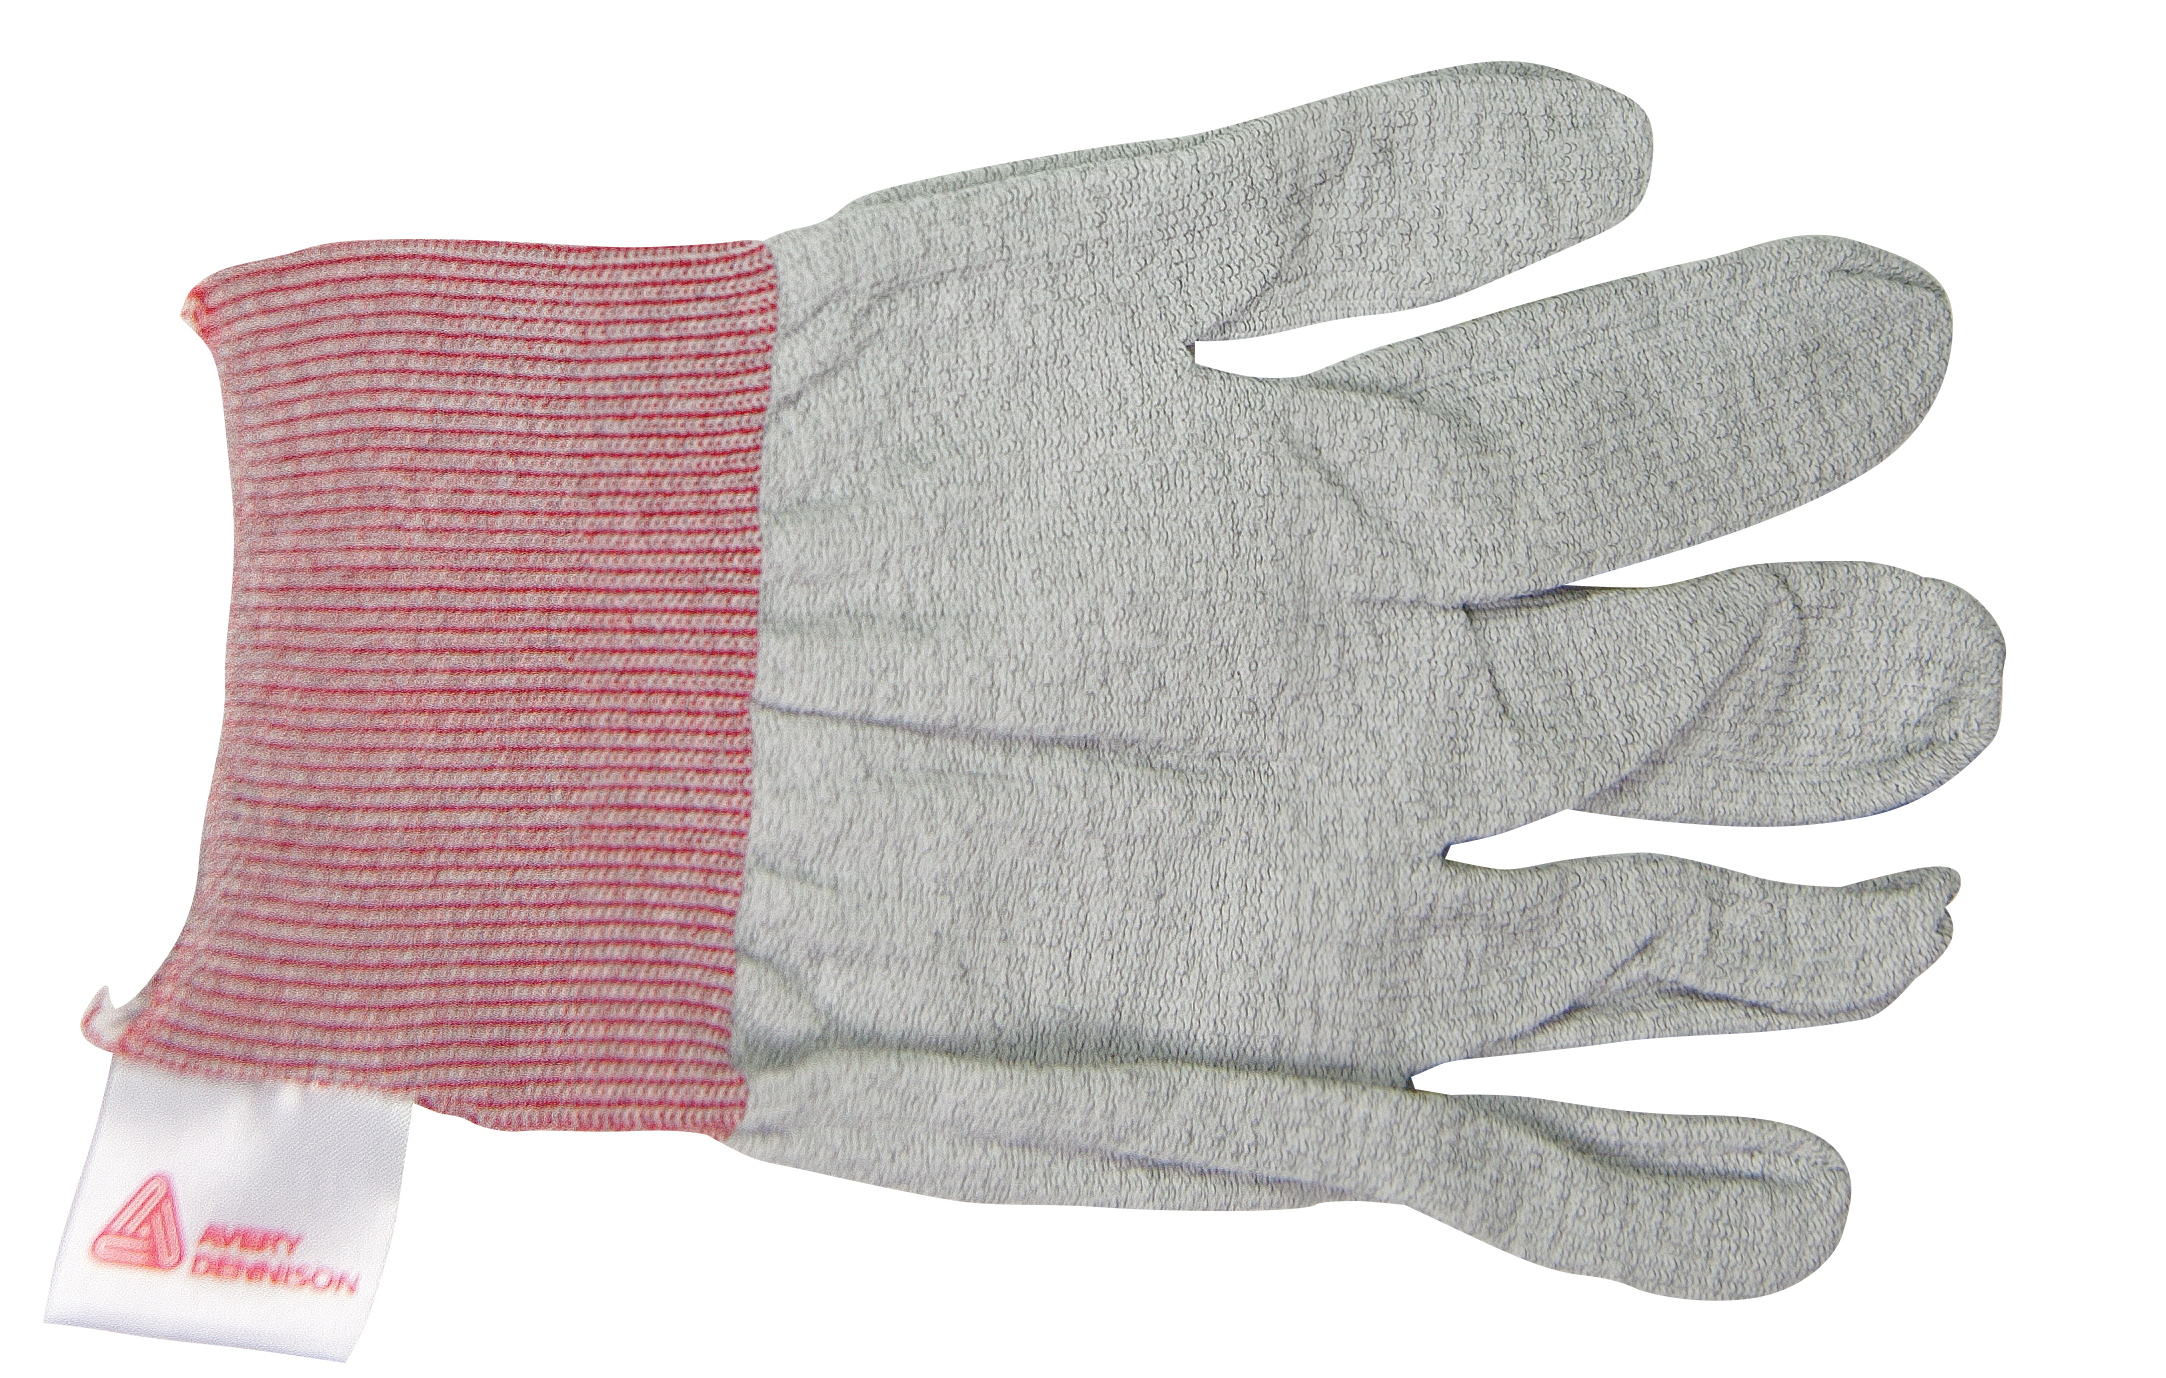 Vinyl application gloves